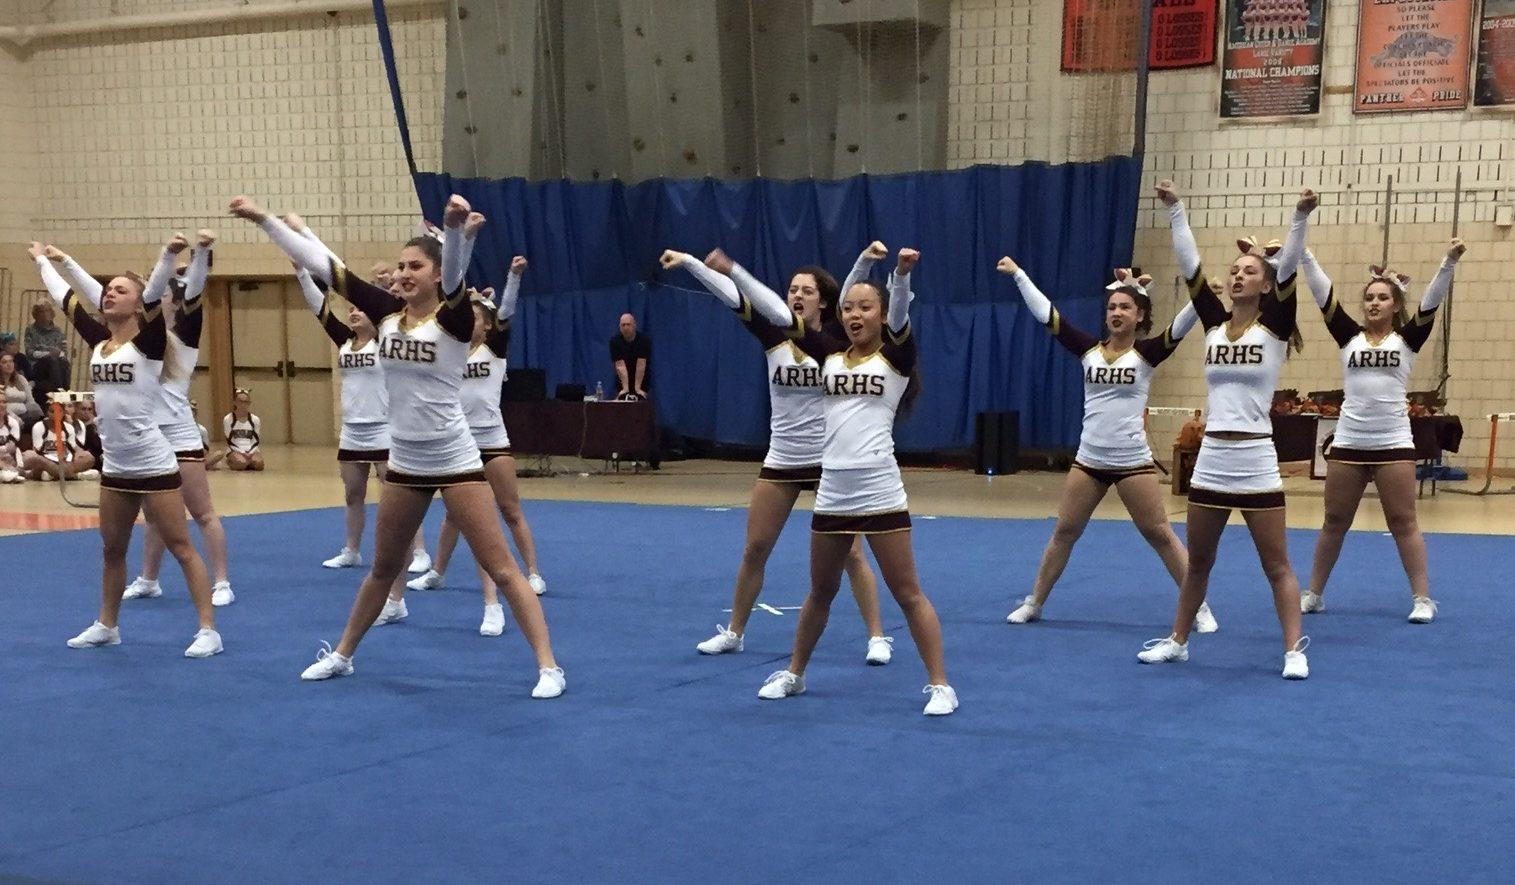 The cheer team competed at Regionals on November 13.